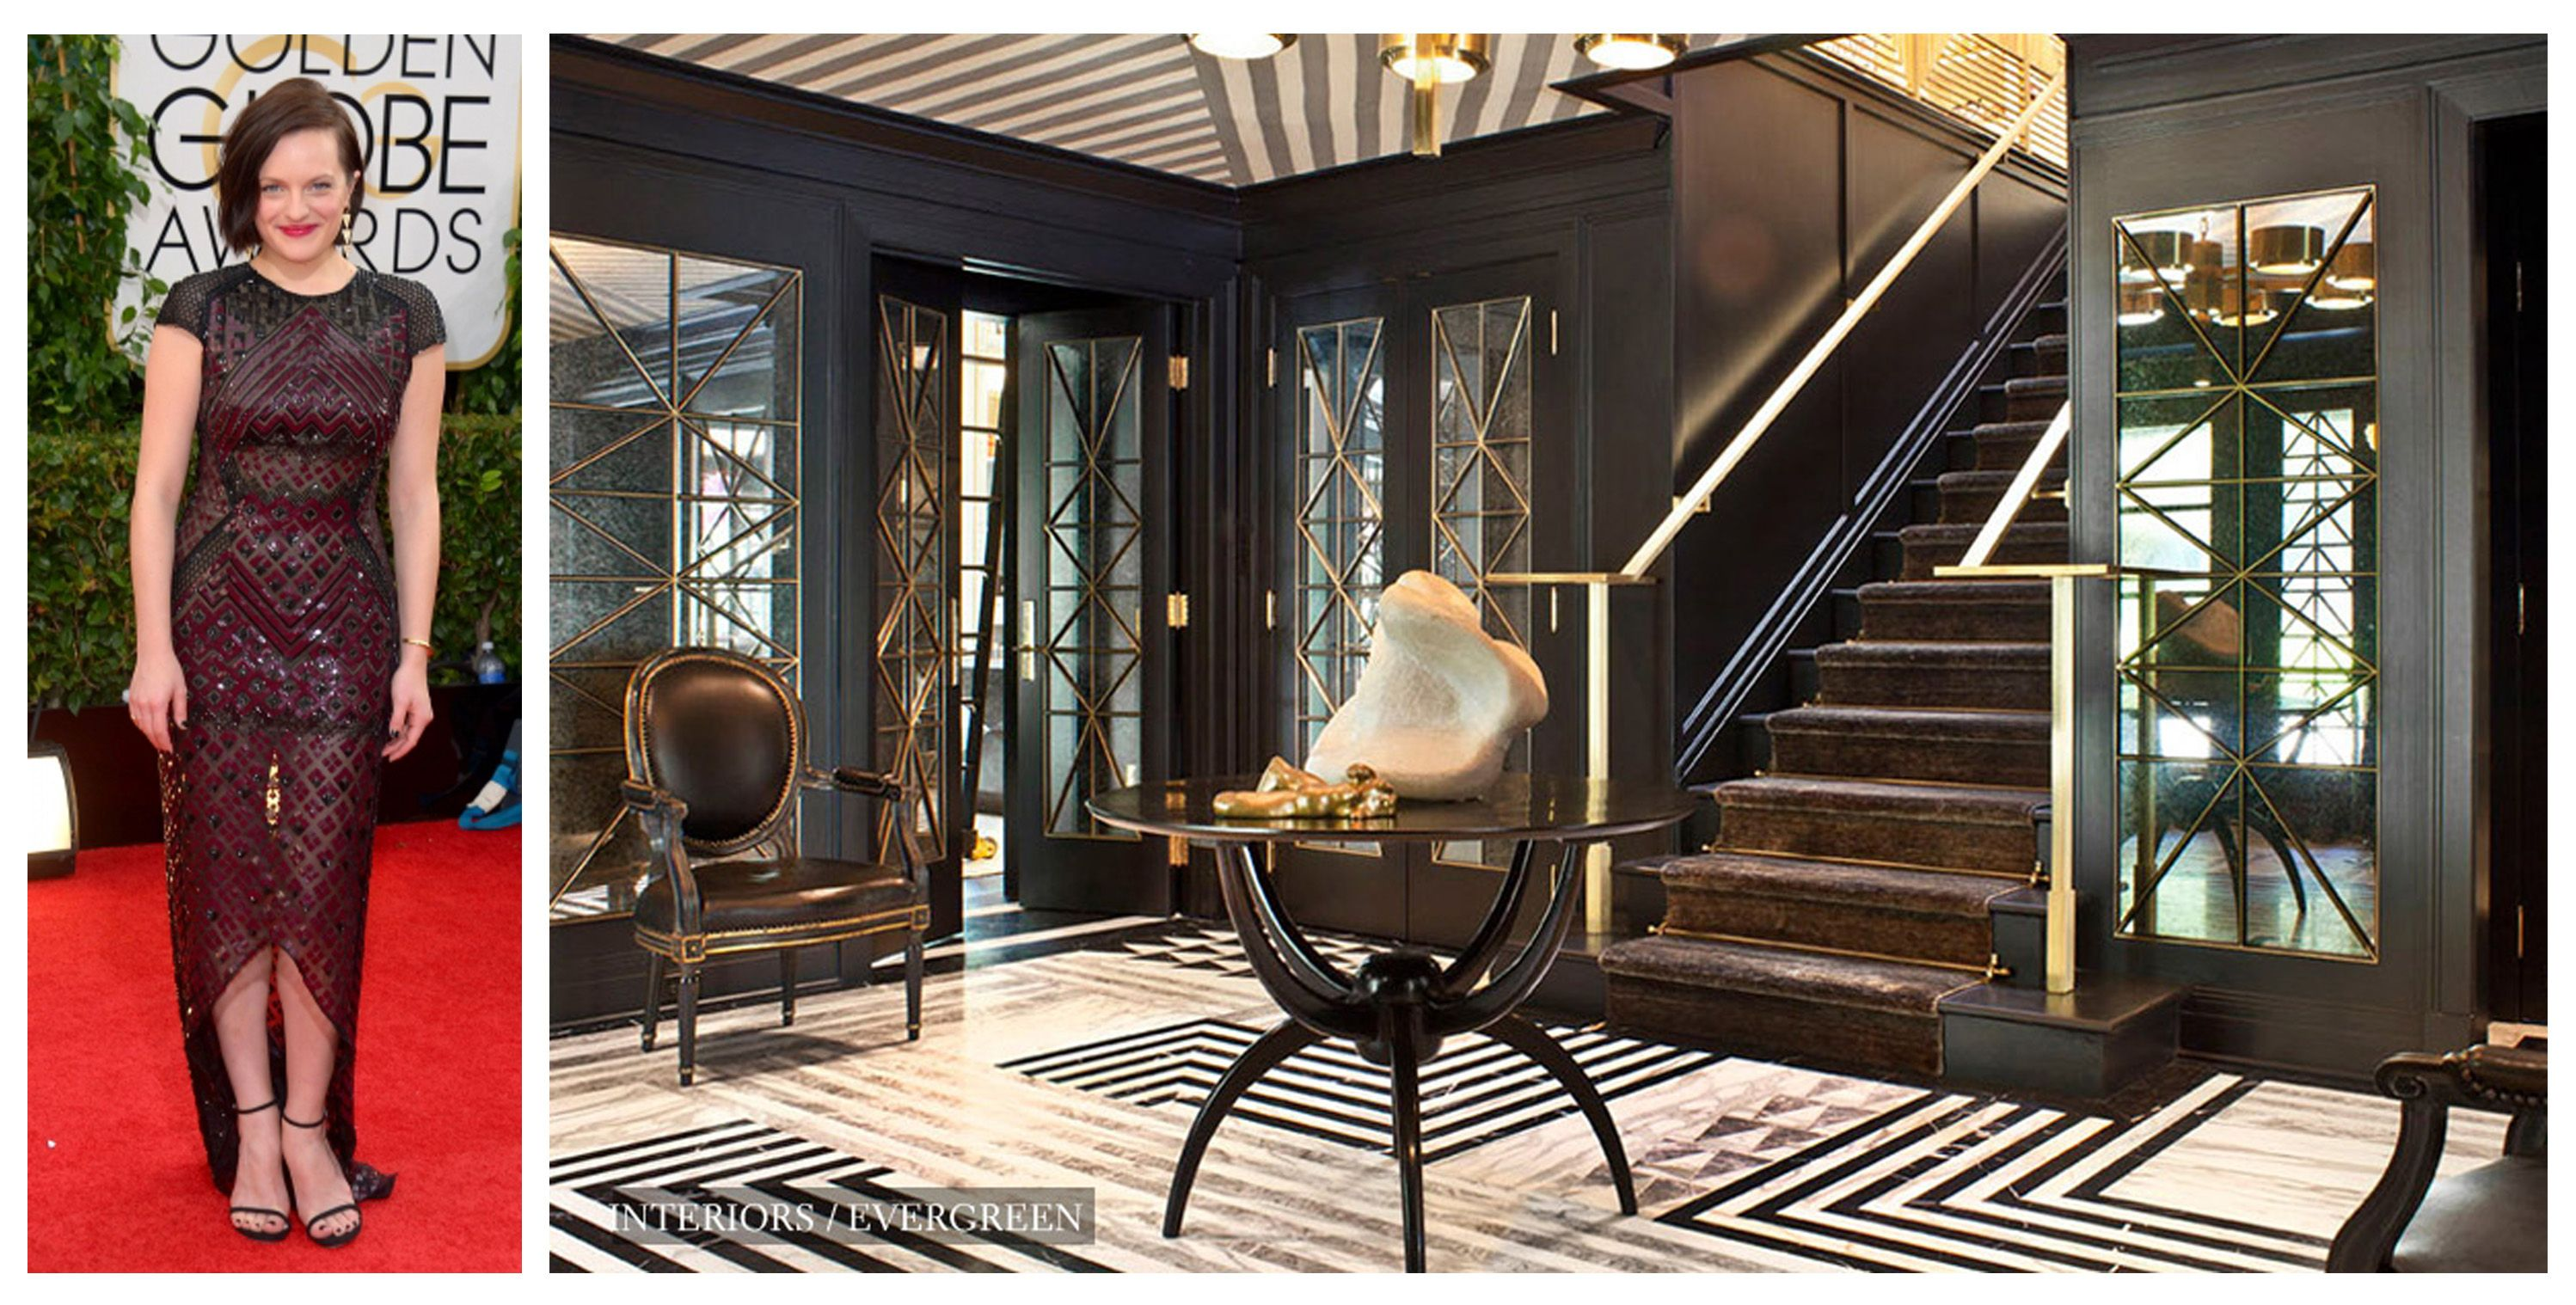 1000+ images about French rt Deco on Pinterest - ^